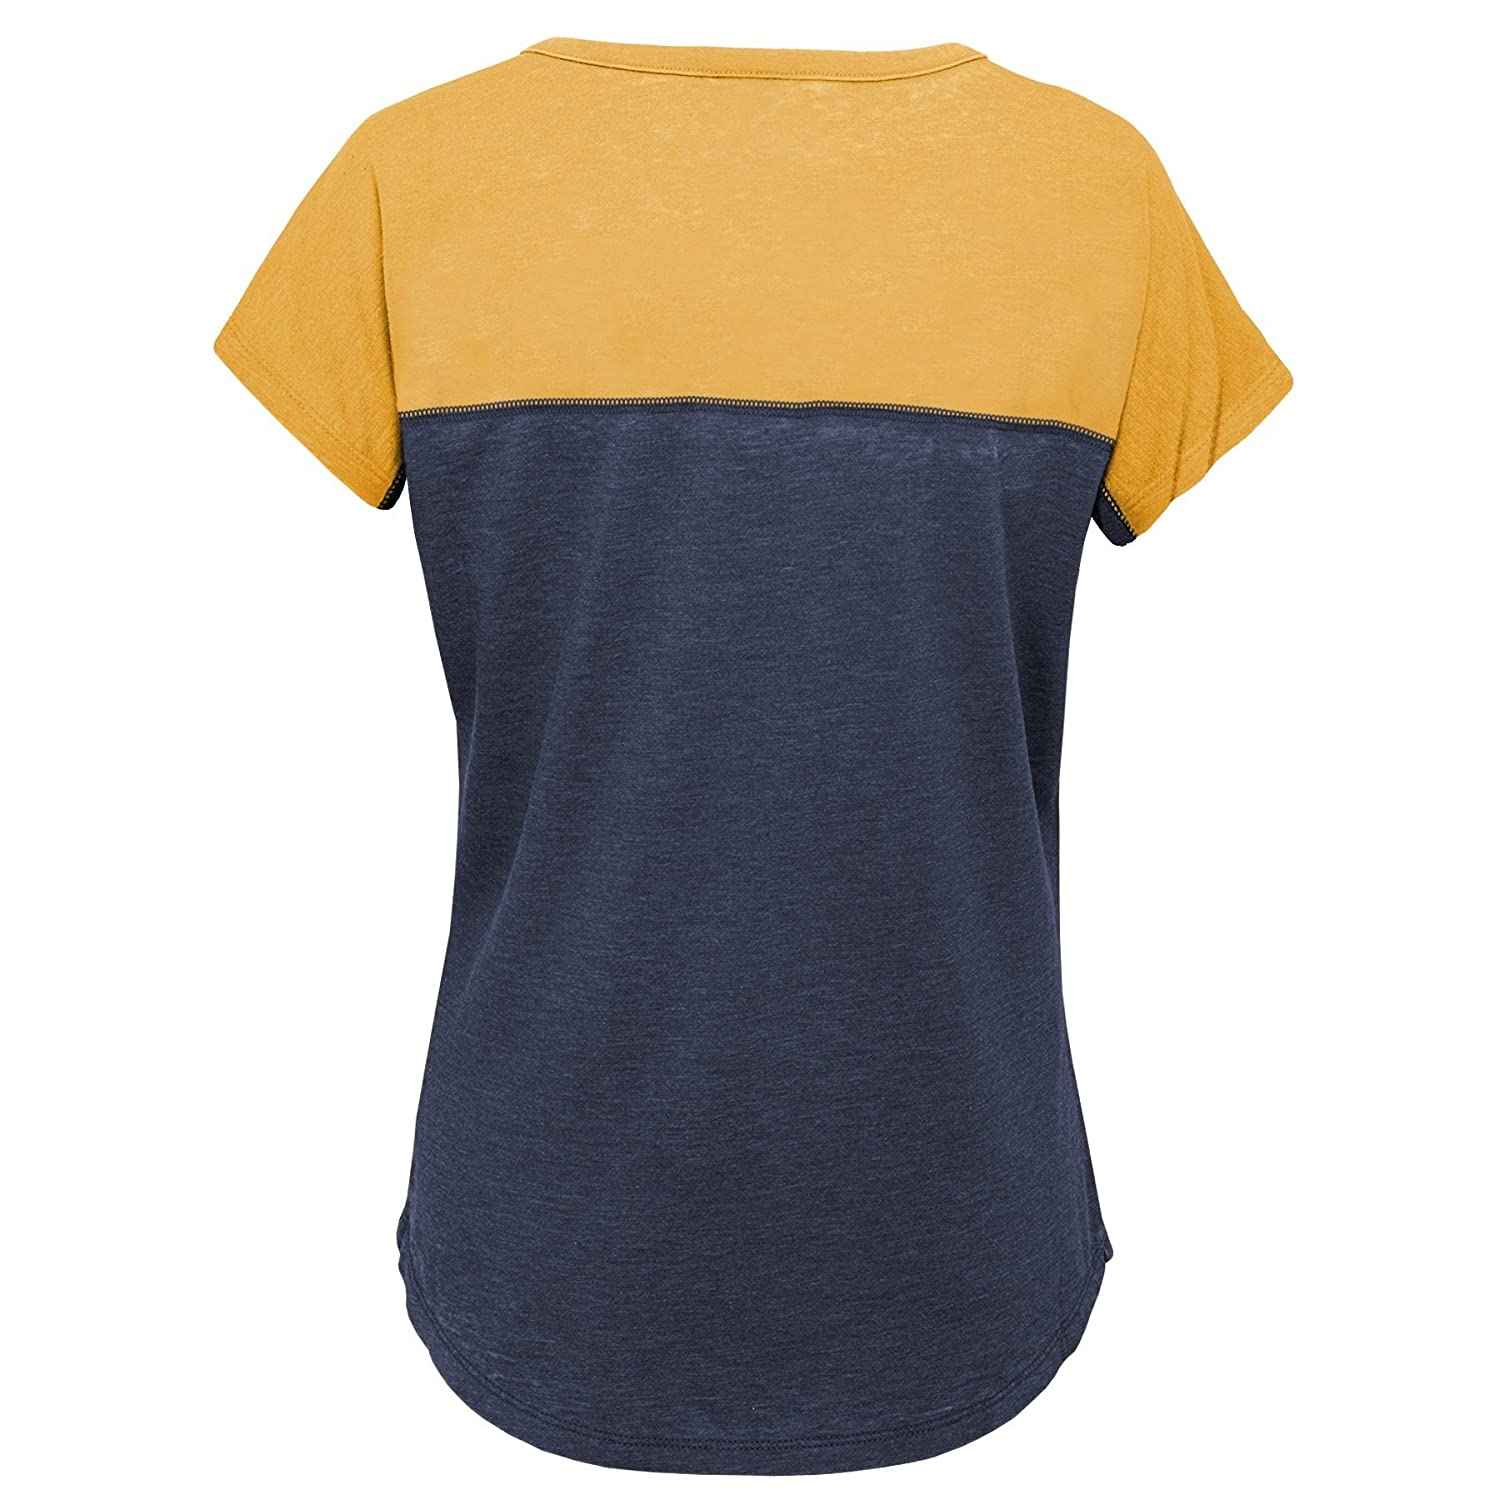 Youth Small Dark Navy NCAA by Outerstuff NCAA West Virginia Mountaineers Youth Girls Tribute Raglan Football Tee 7-8